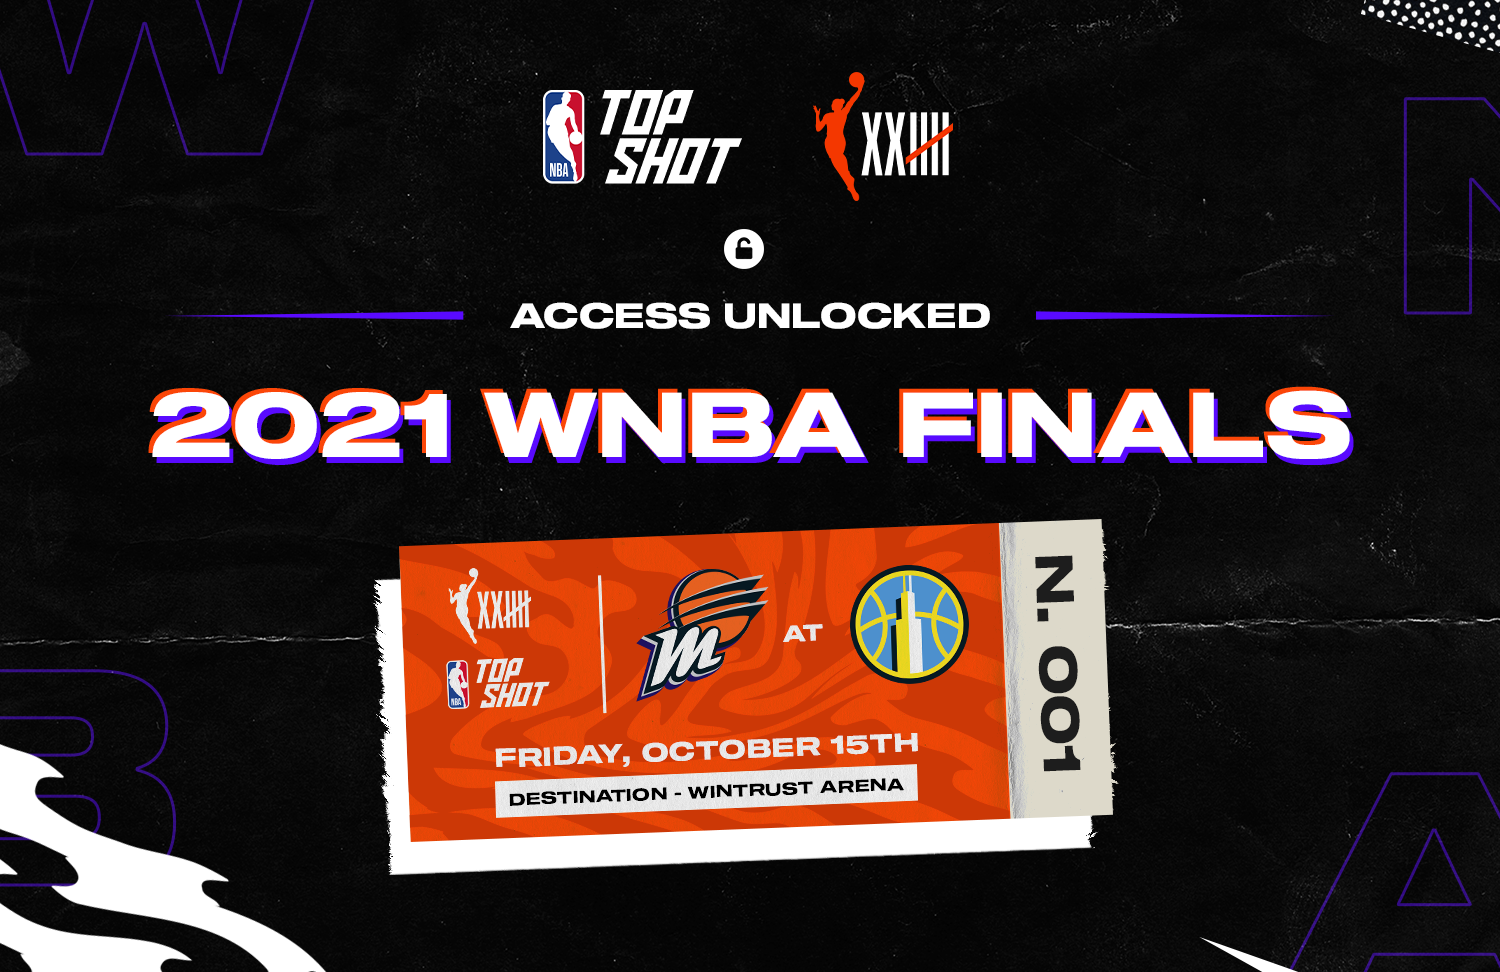 We are going to Game 3 of the WNBA Finals in Chicago and three collectors are coming with us!